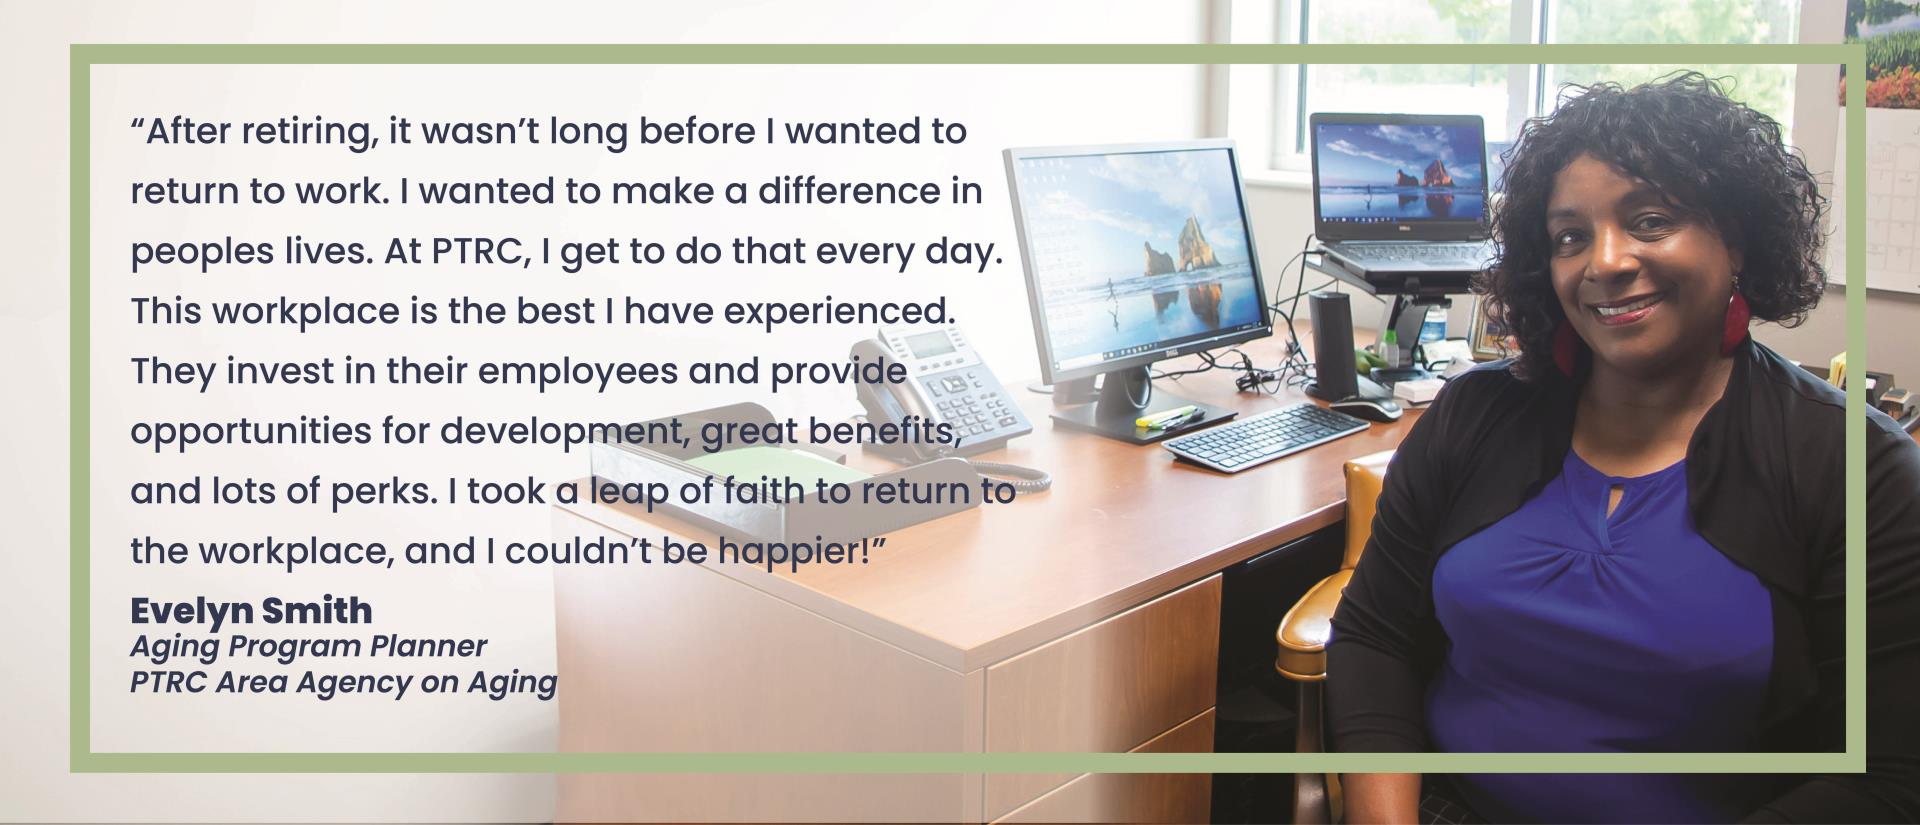 Evelyn Smith, Aging Program Planner at the PTRC says that after retiring, it wasn't long before I wanted to return to work.  I wanted to make a difference in people's lives.  At PTRC, I get to do that every day. This workplace is the best I have experienced.